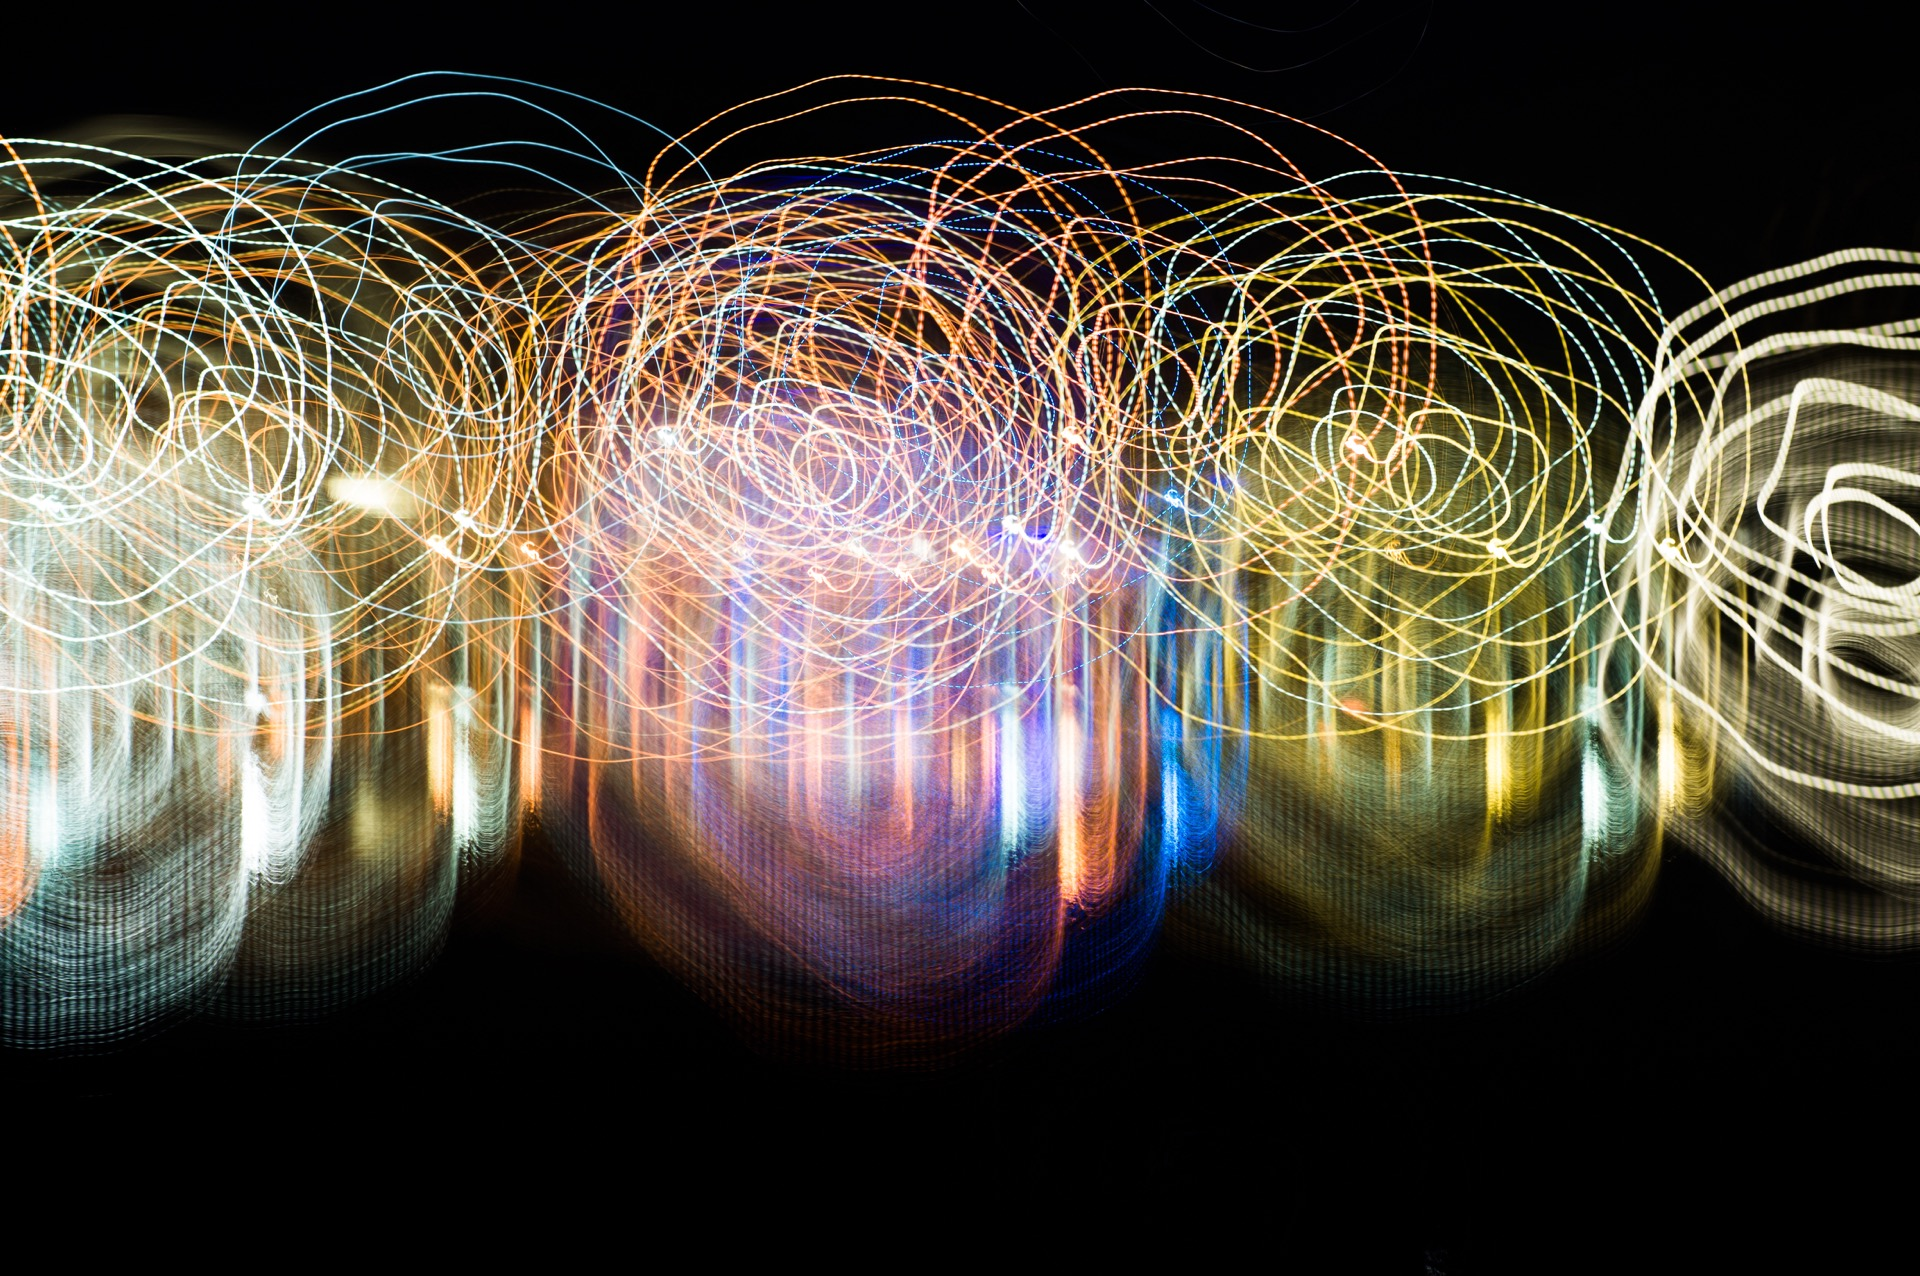 An abstract picture showing large spirals using light painting technique with vivid mixed rainbow colors on a black background